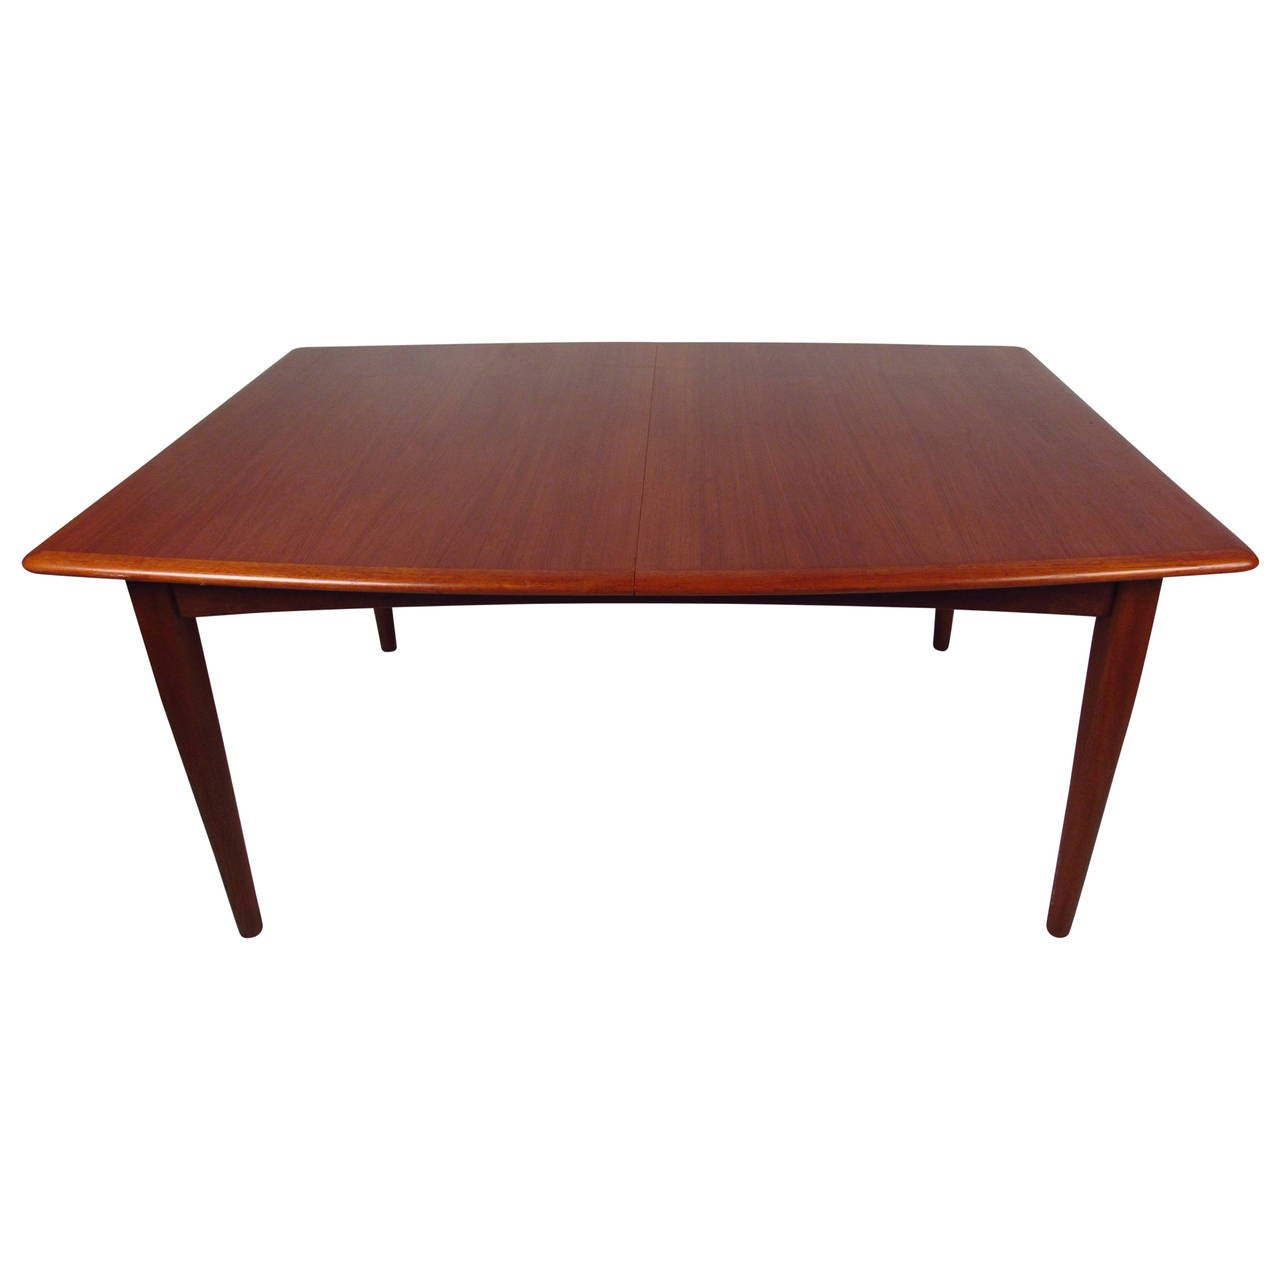 Danish modern butterfly leaf dining table at 1stdibs for Dining room tables with leaves